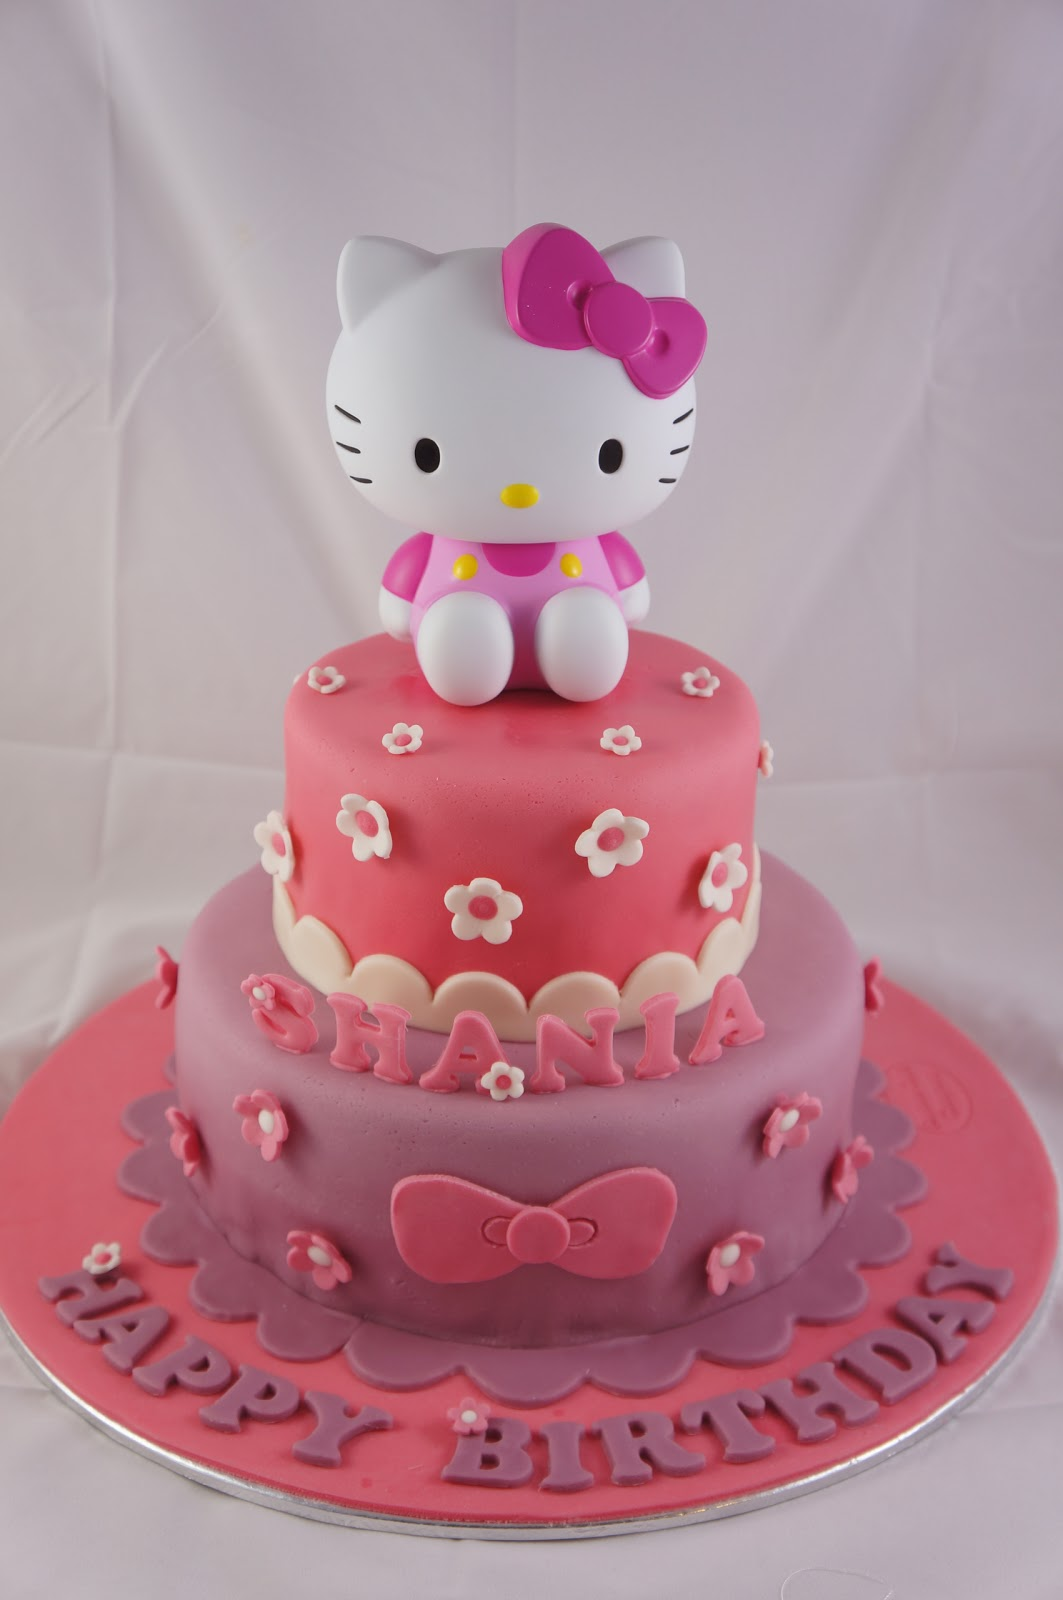 Cake Designs Of Hello Kitty : Joyous Cake Company: Hello Kitty pink cake